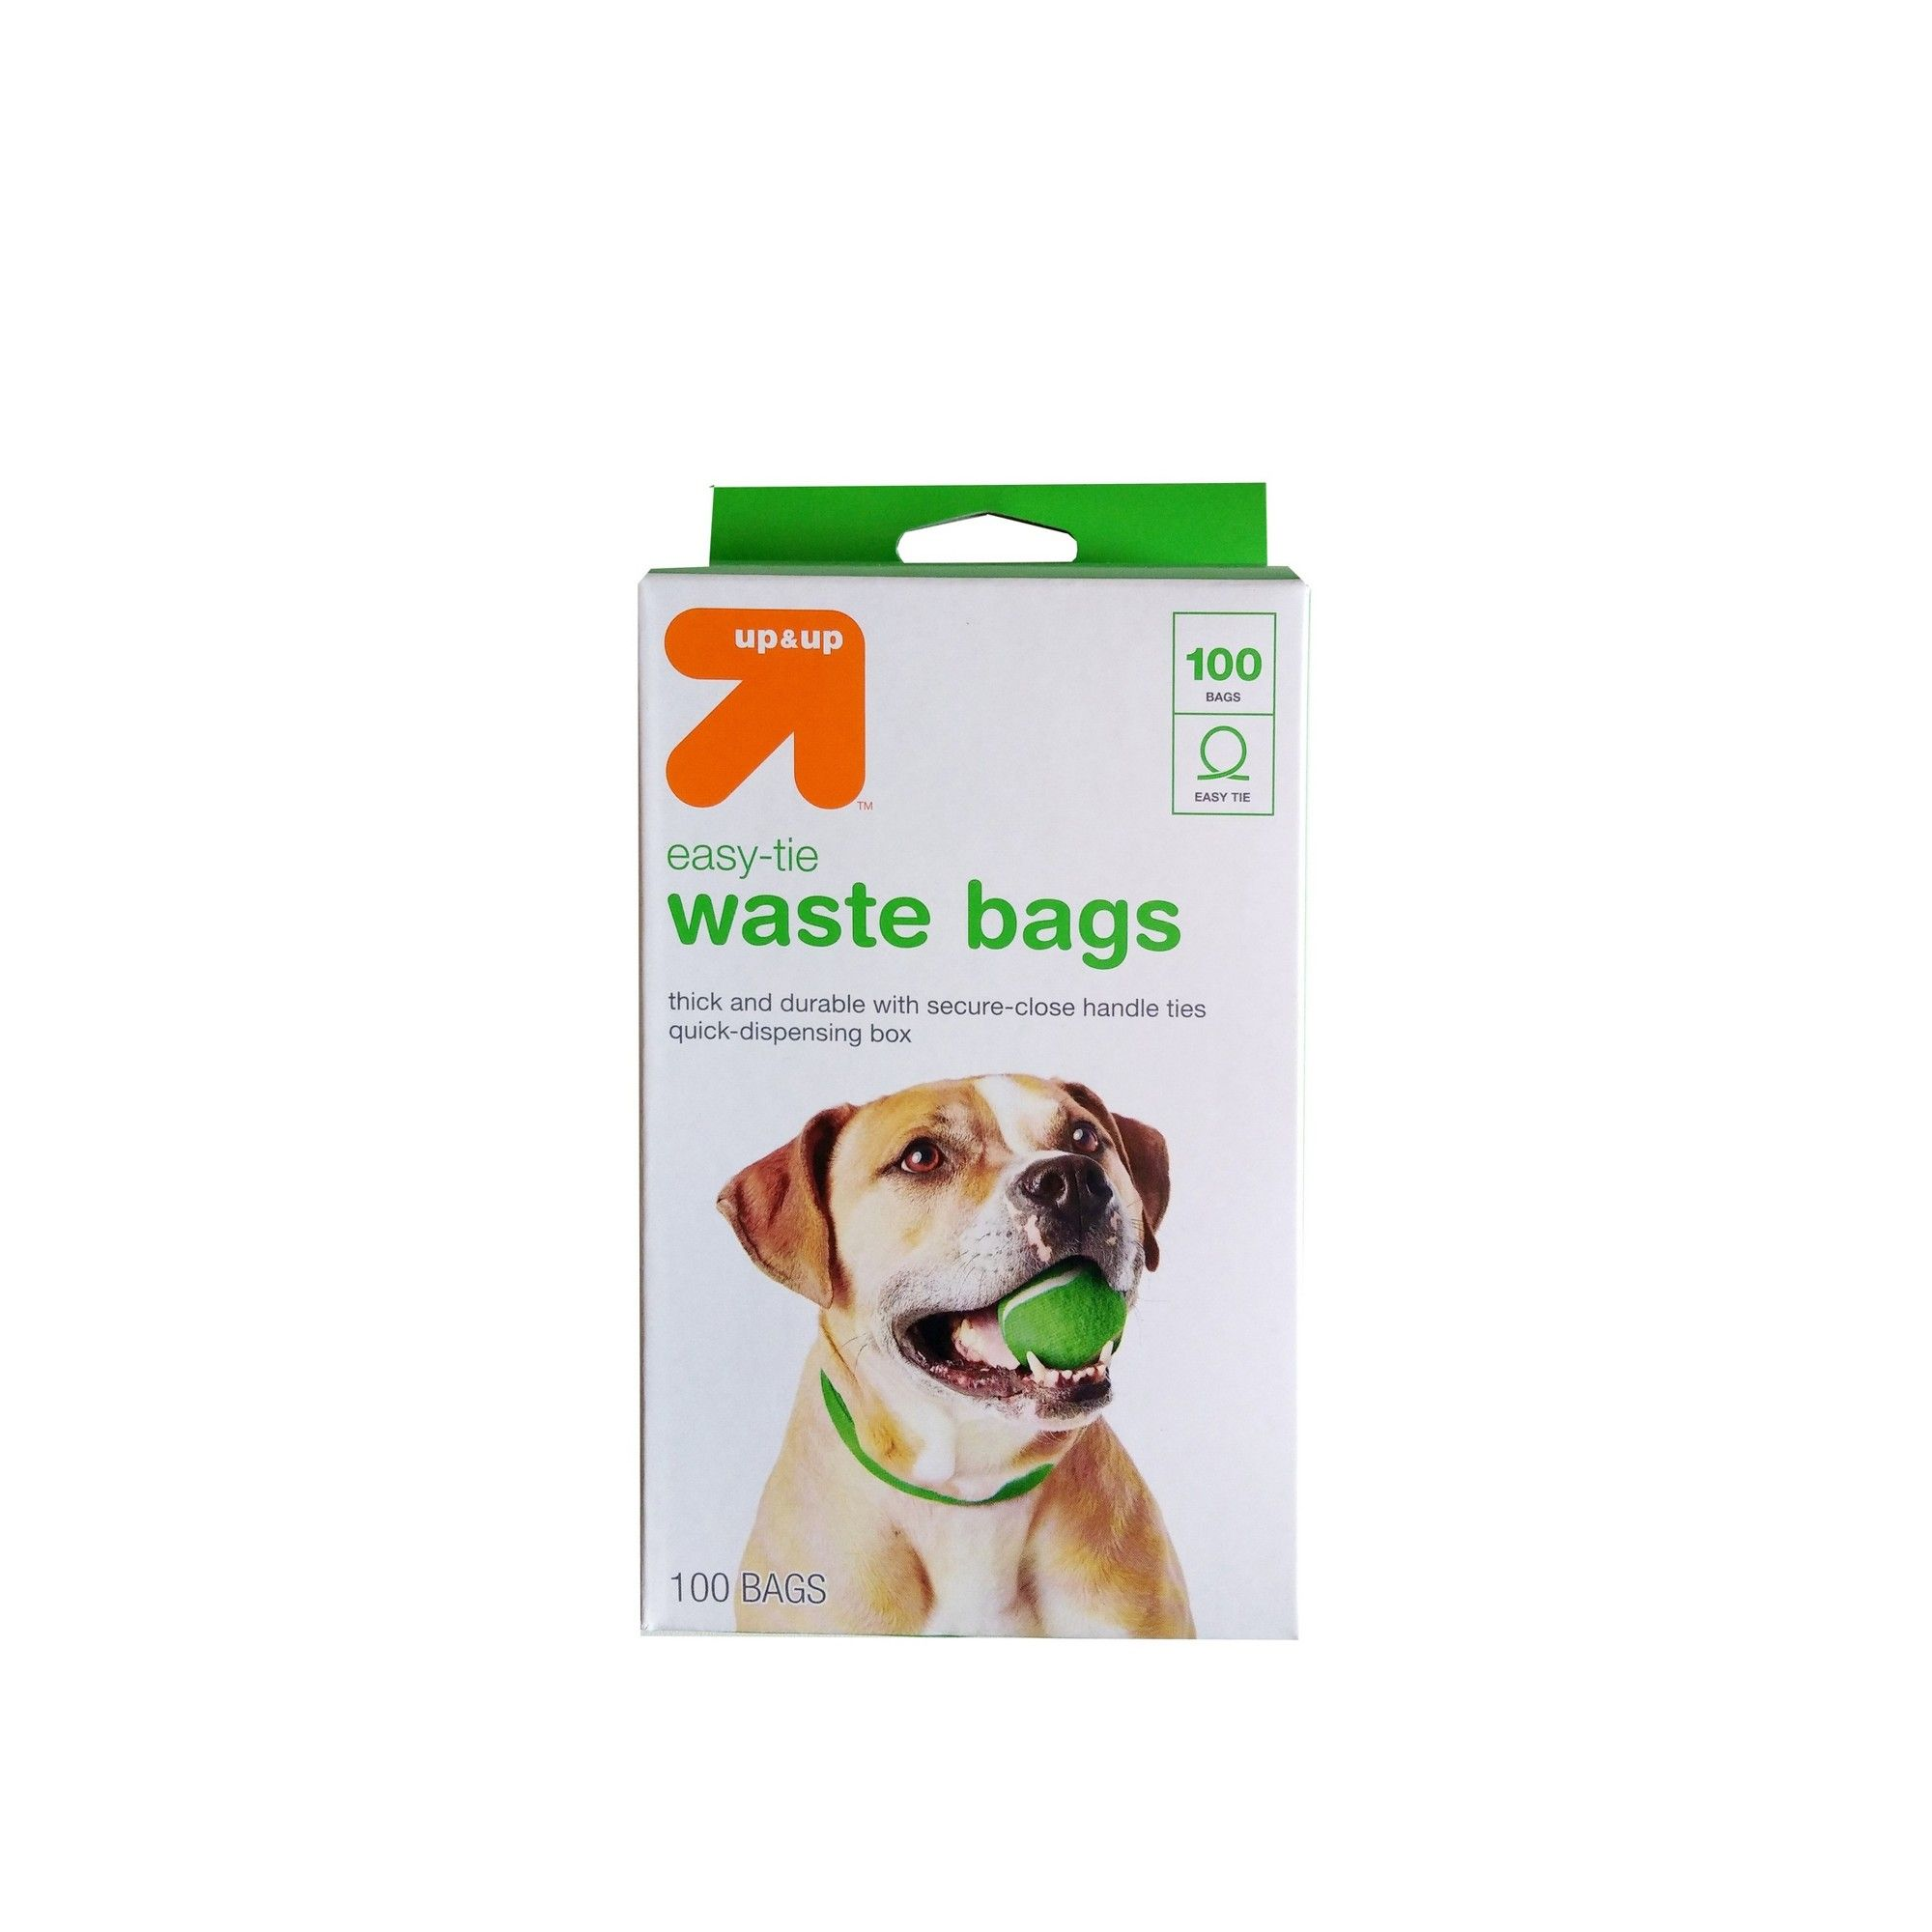 Dog Waste Disposal EasyTie Handle Bags 100ct Up&Up